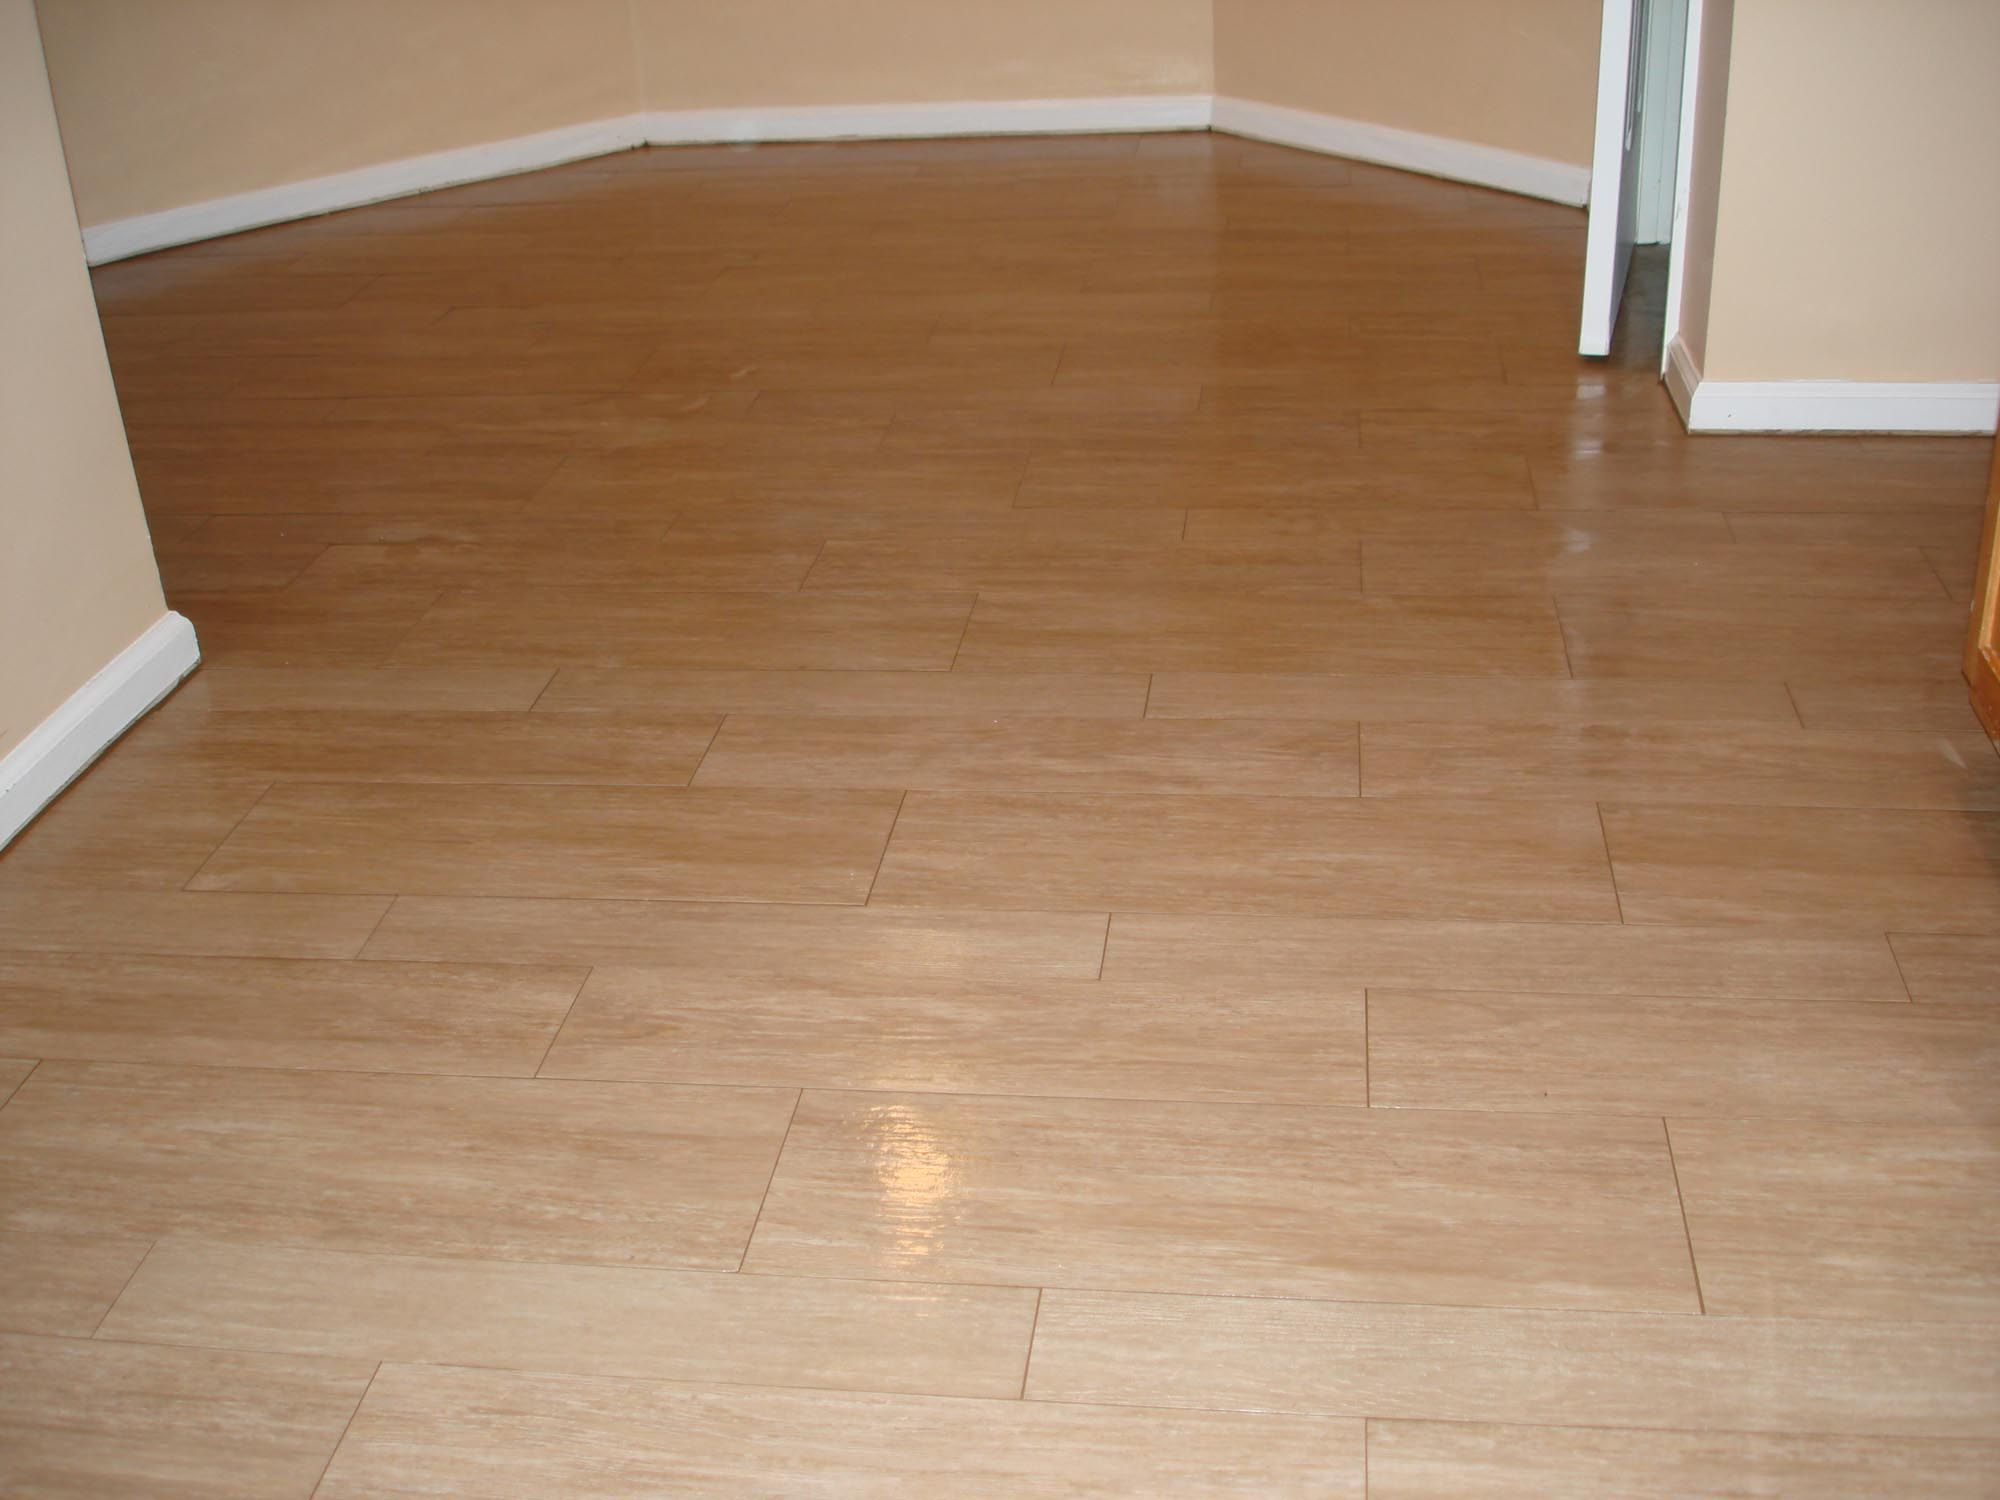 Pin by C Trotty on Flooring Wood tile floor kitchen